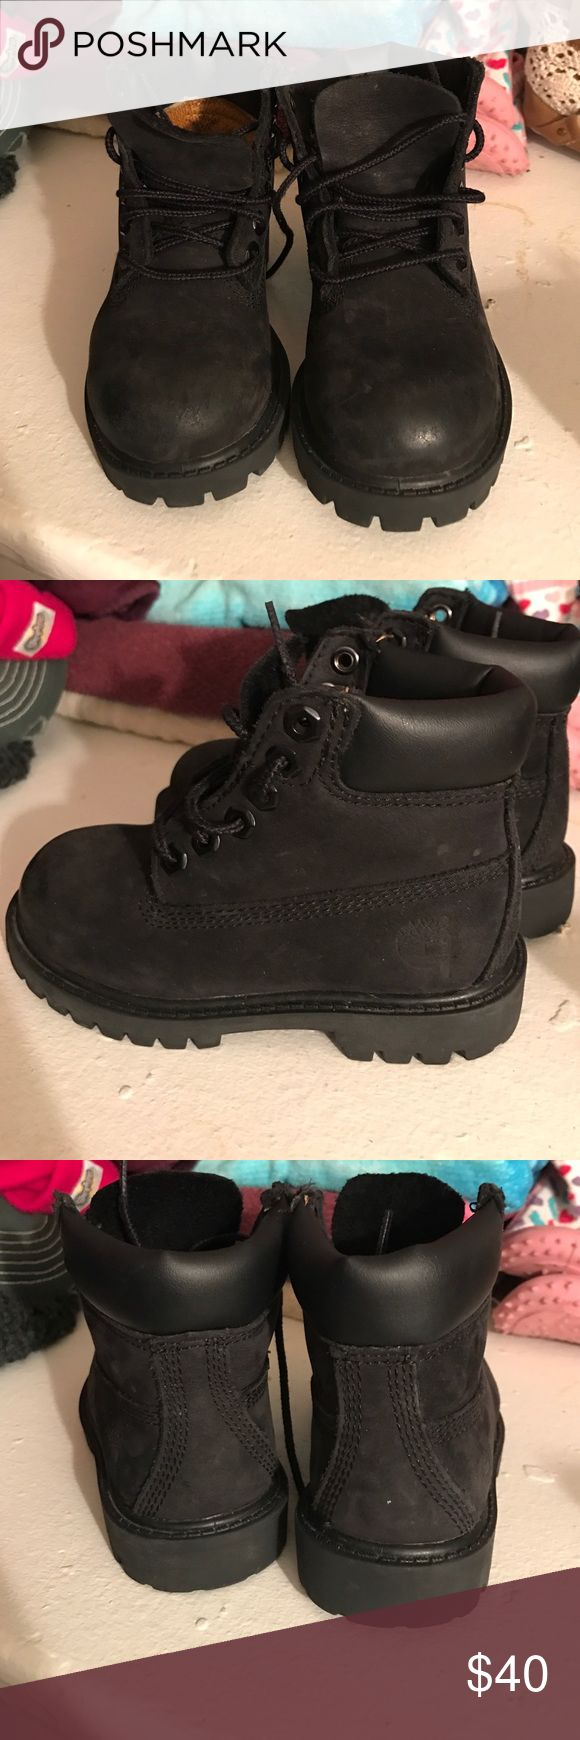 Toddler Black timberland boots All black timberland  boots.... In good condition.... barely worn Shoes Boots